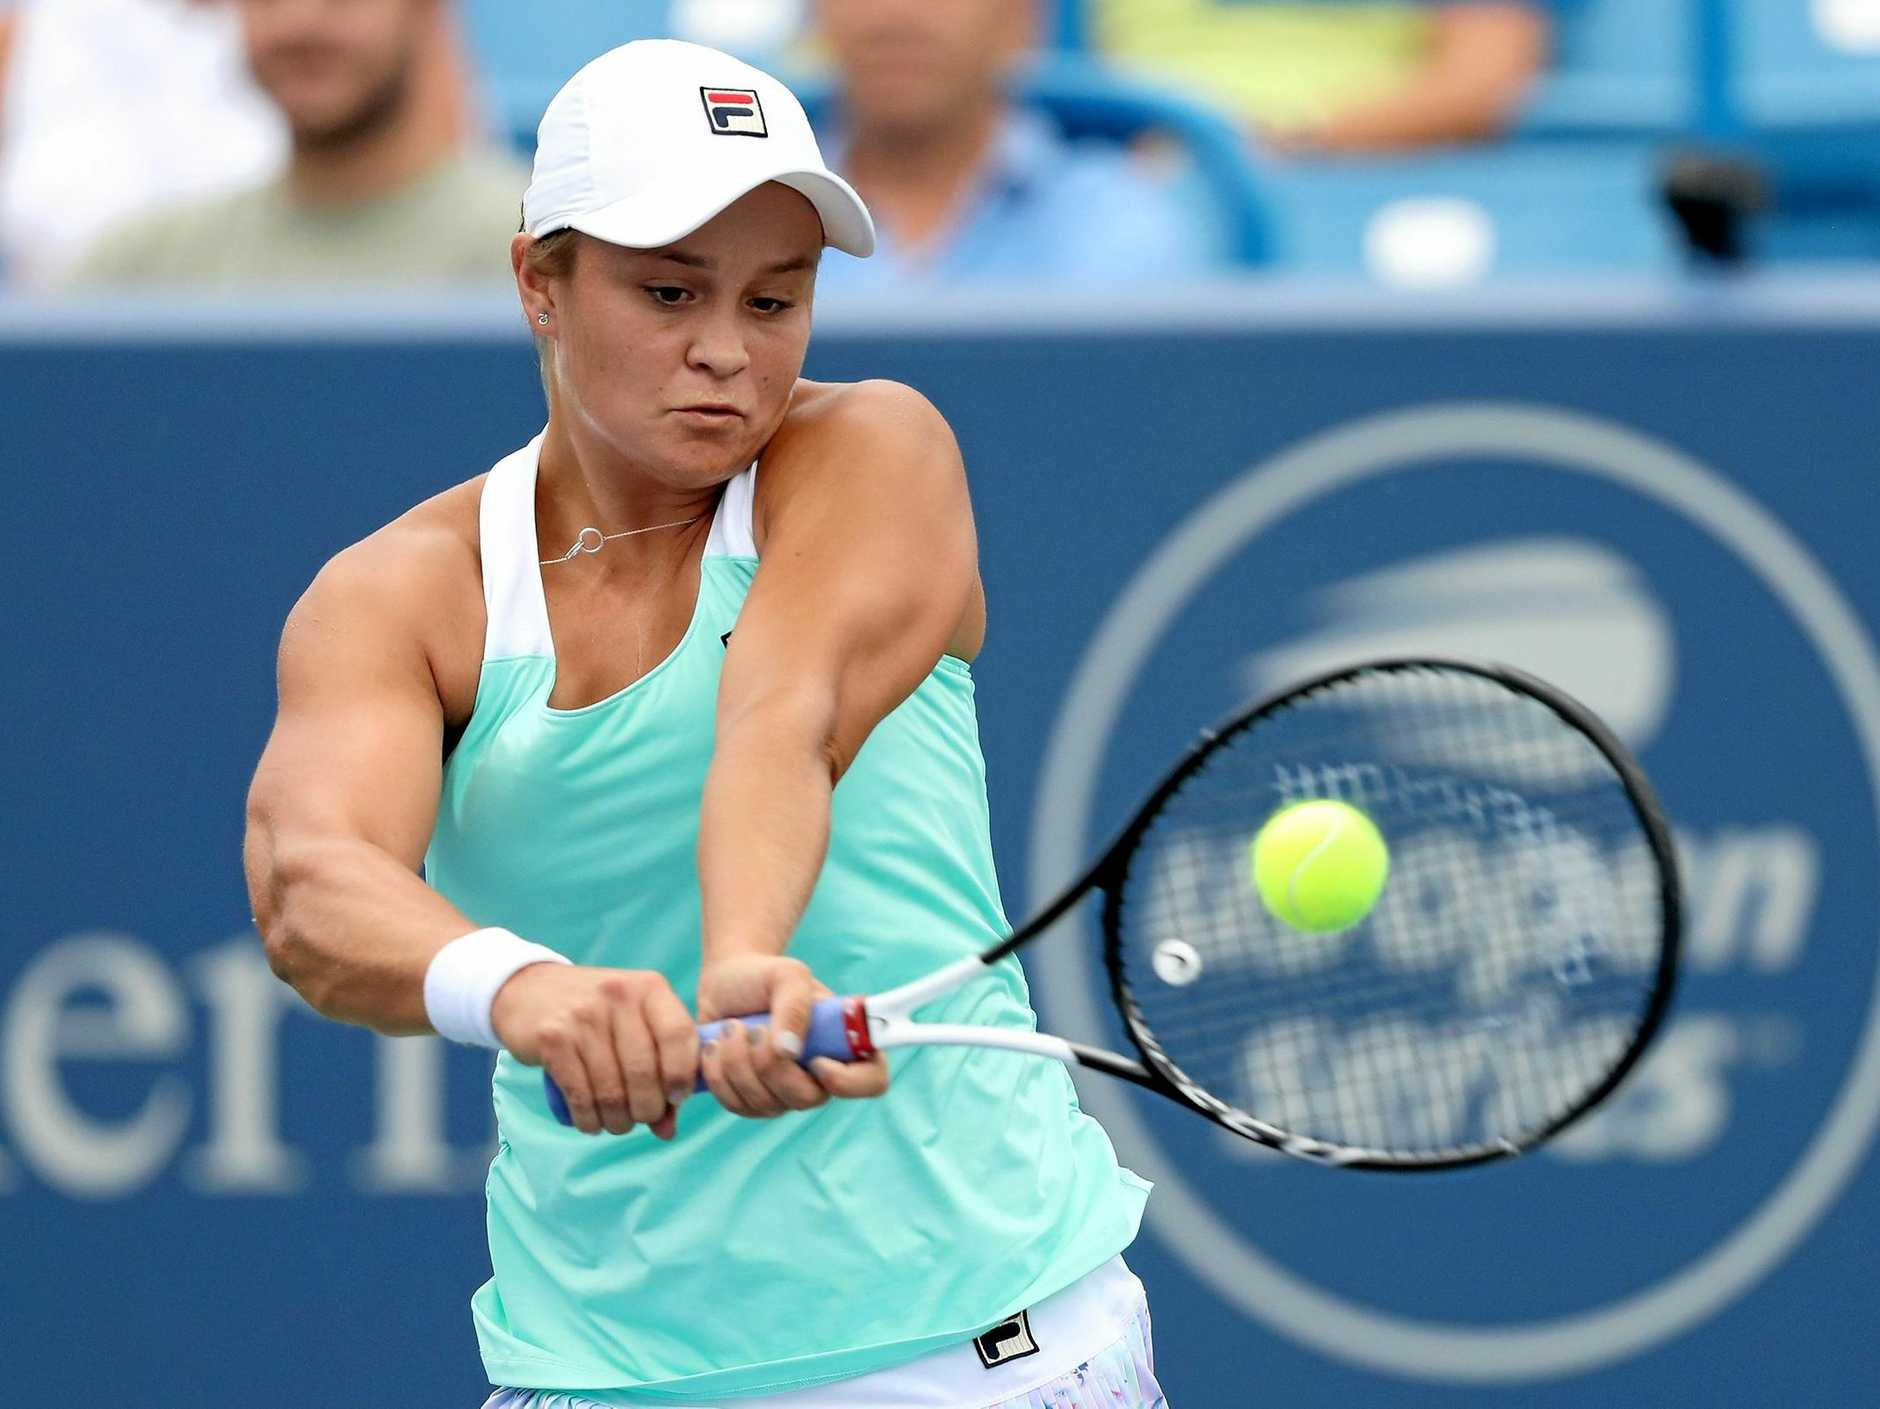 Australia's Ashleigh Barty, seeded 18th for the US Open, has lost only twice since Wimbledon. Picture: Matthew Stockman/Getty Images